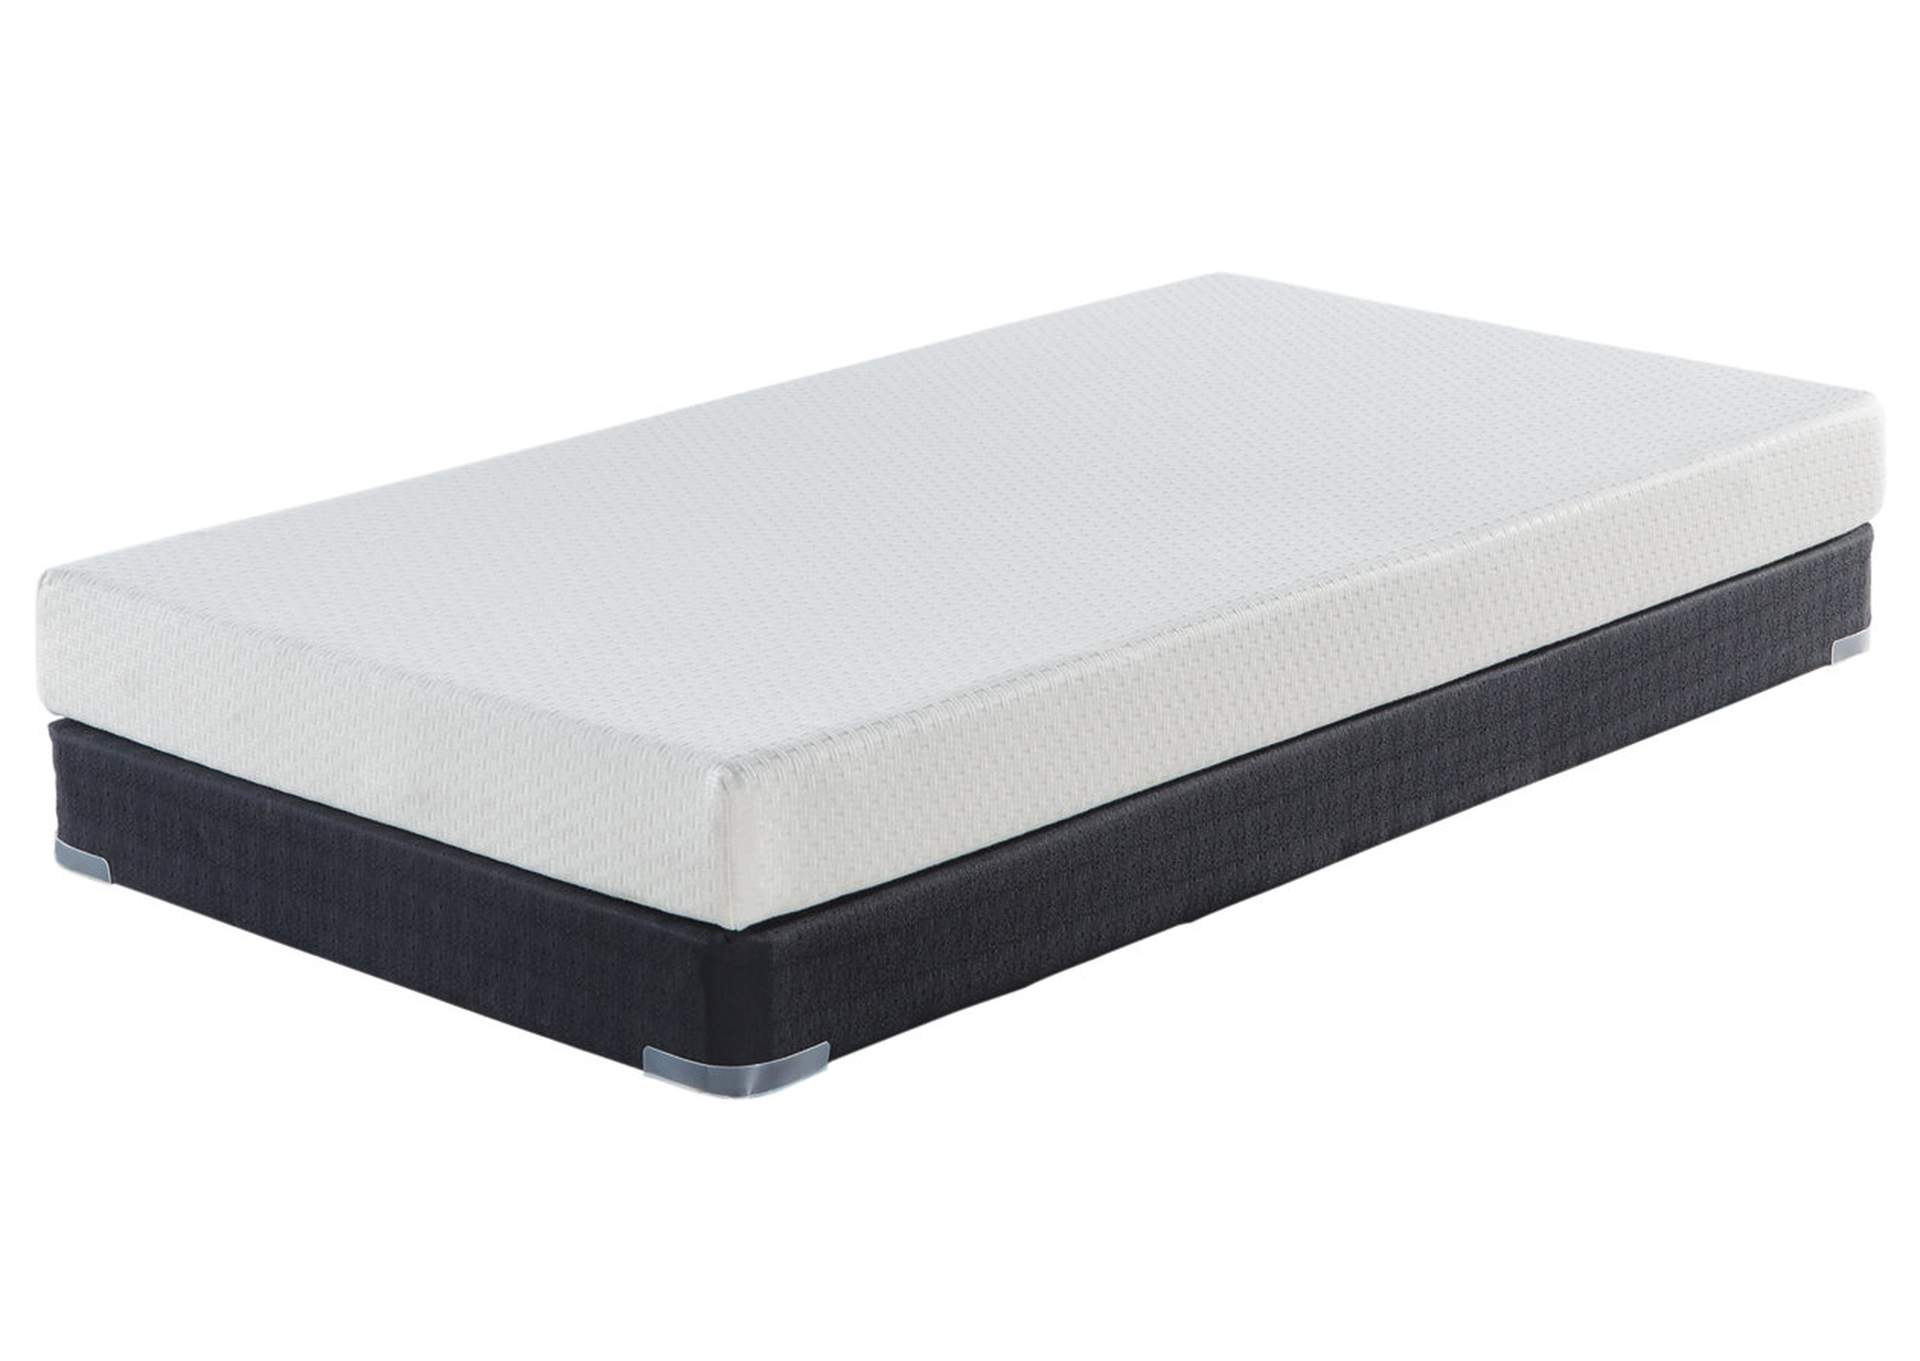 6 Inch Chime Express Full Memory Foam Mattress,Sierra Sleep by Ashley